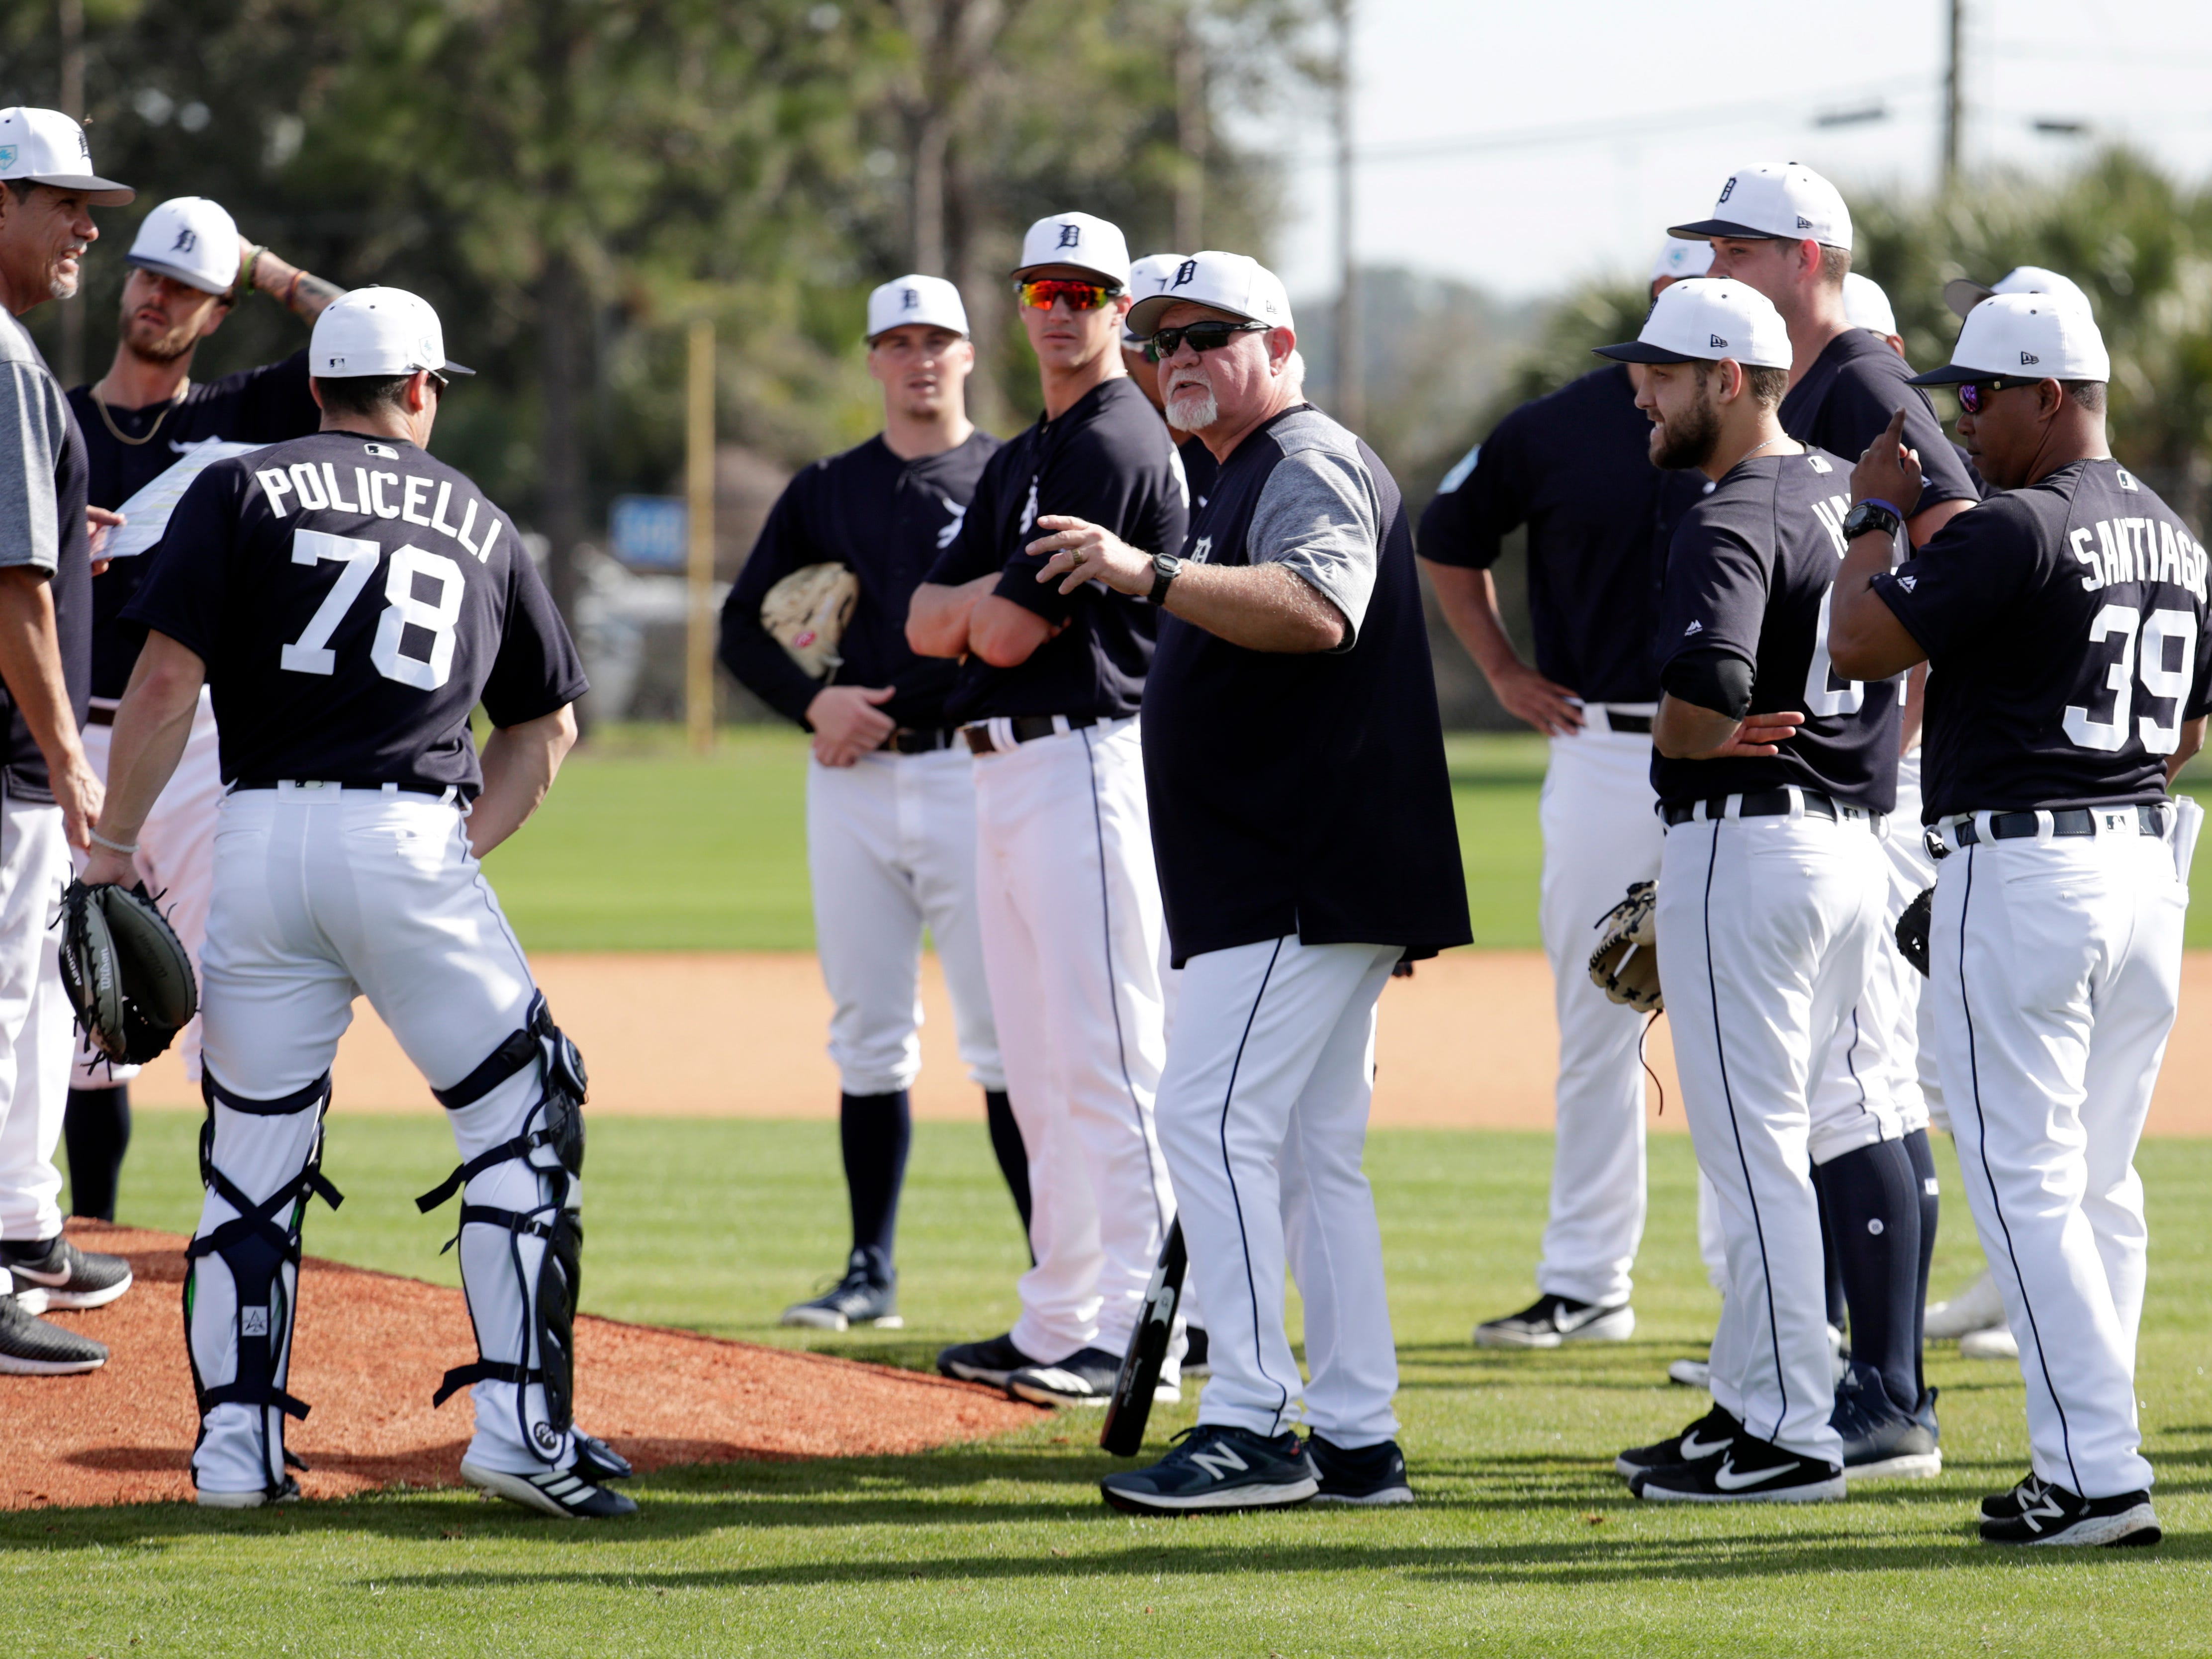 Detroit Tigers manager Ron Gardenhire, center, talks with his players.